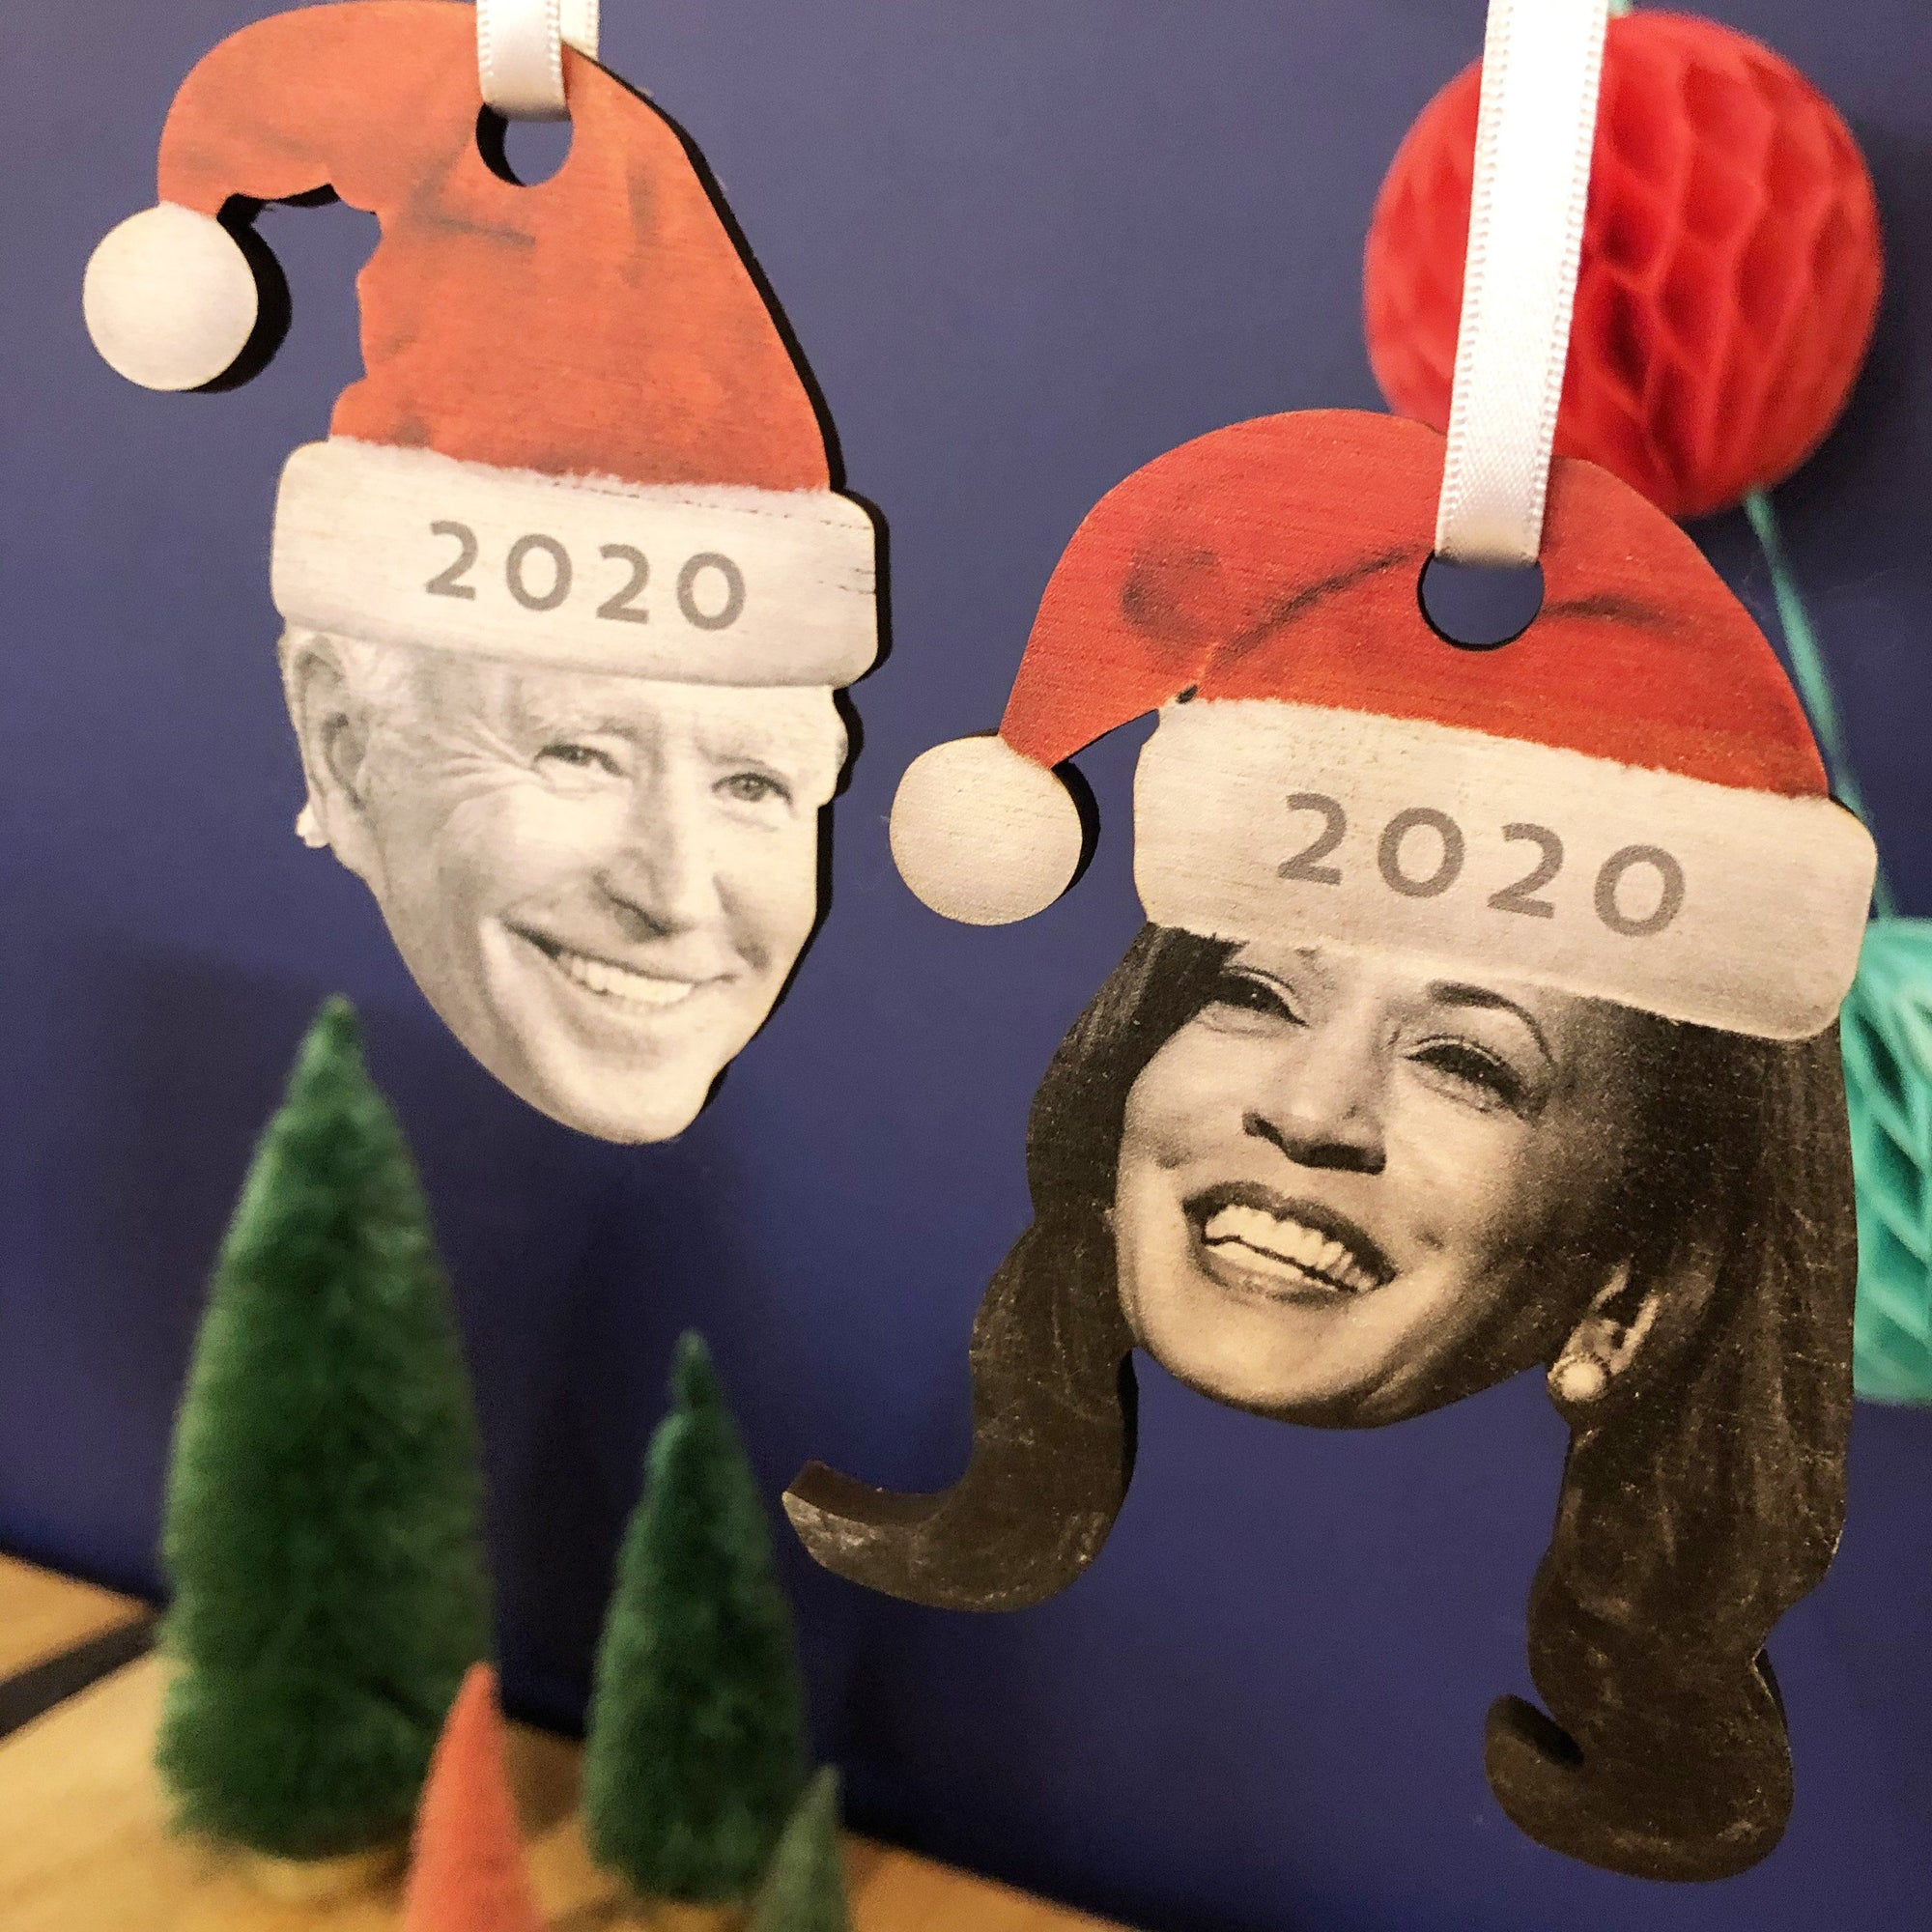 Joe Biden & Kamala Harris 2020 Christmas Tree Ornaments